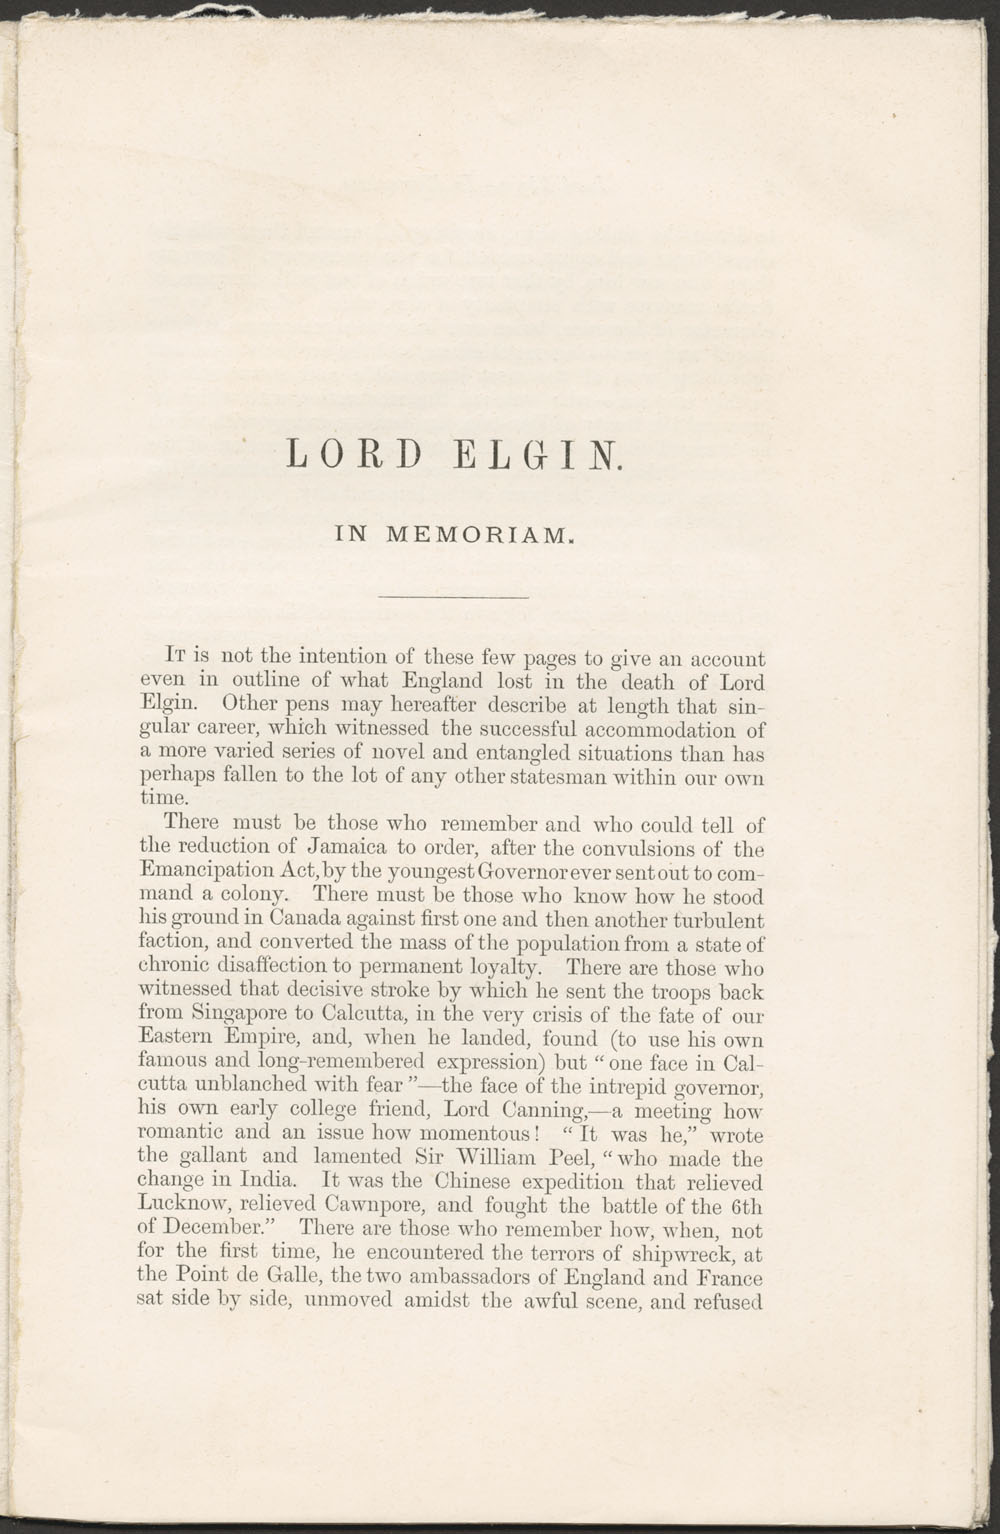 """In Memoriam"" of Lord Elgin  (item 2)"